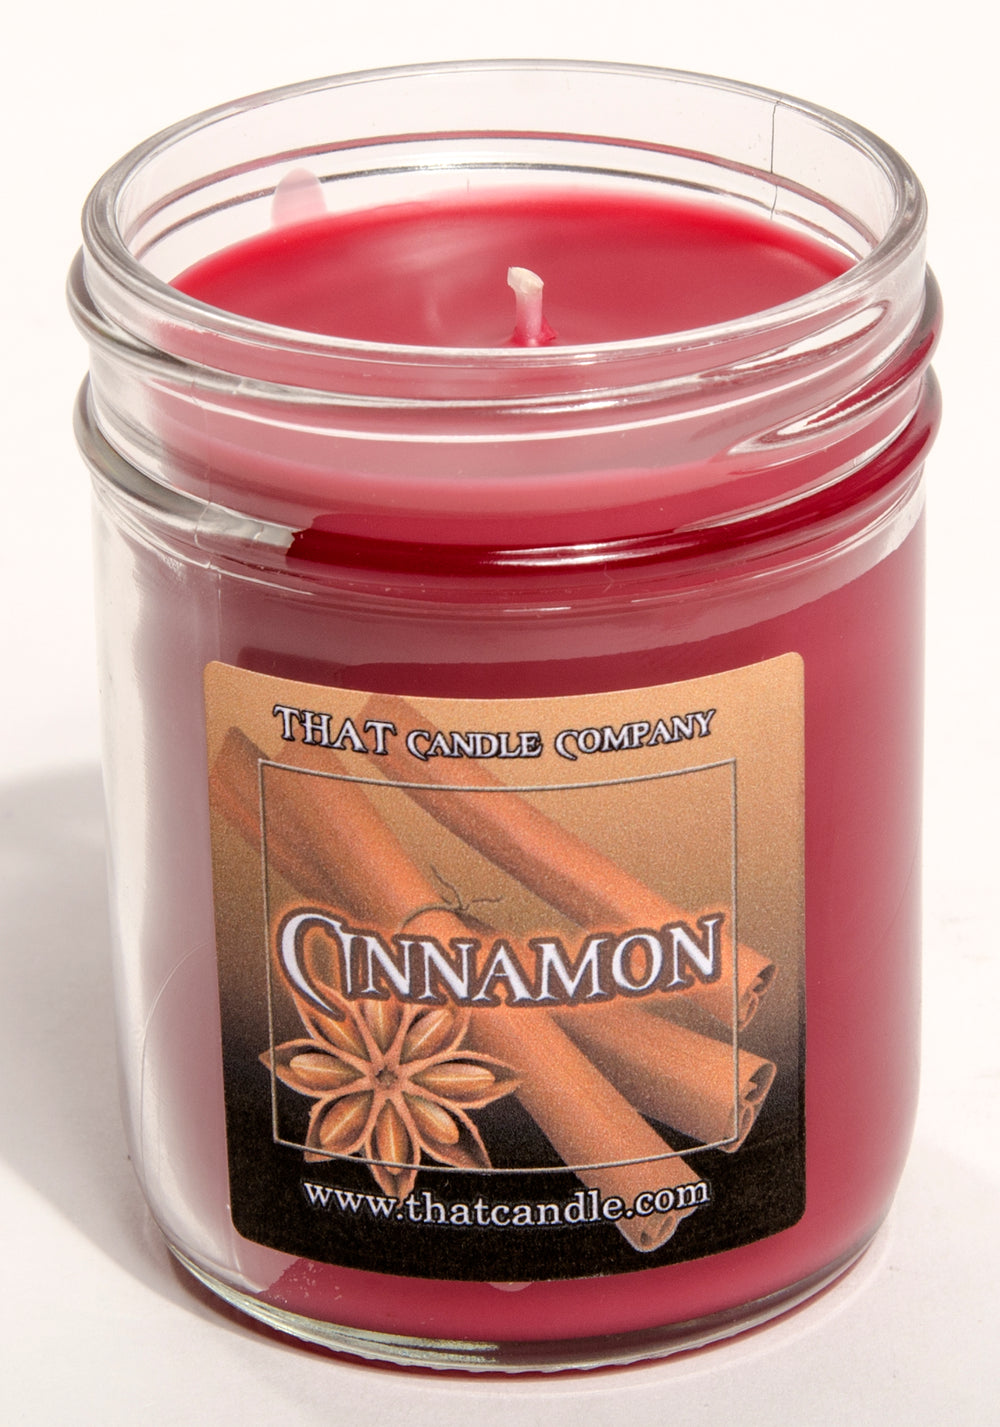 Candle Cinnamon scented